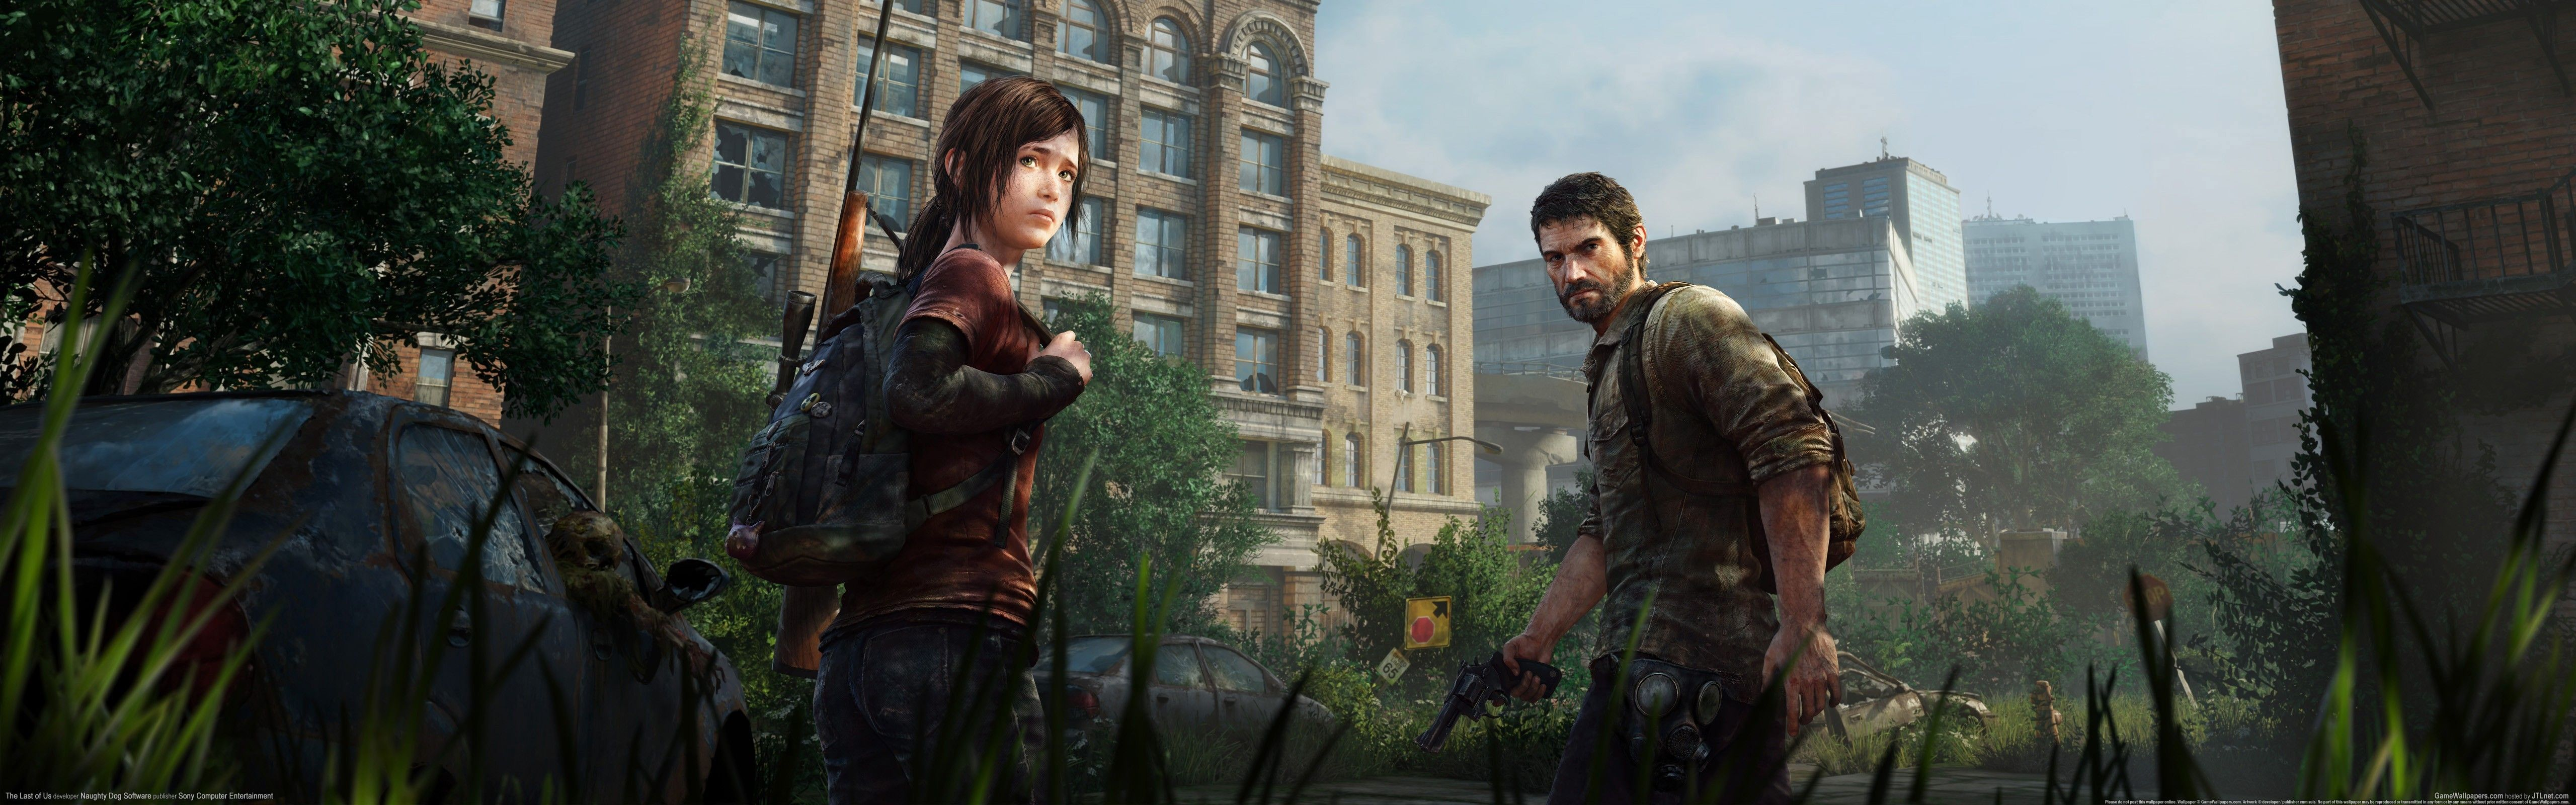 Fondo de pantalla de The Last of Us 5120x1600